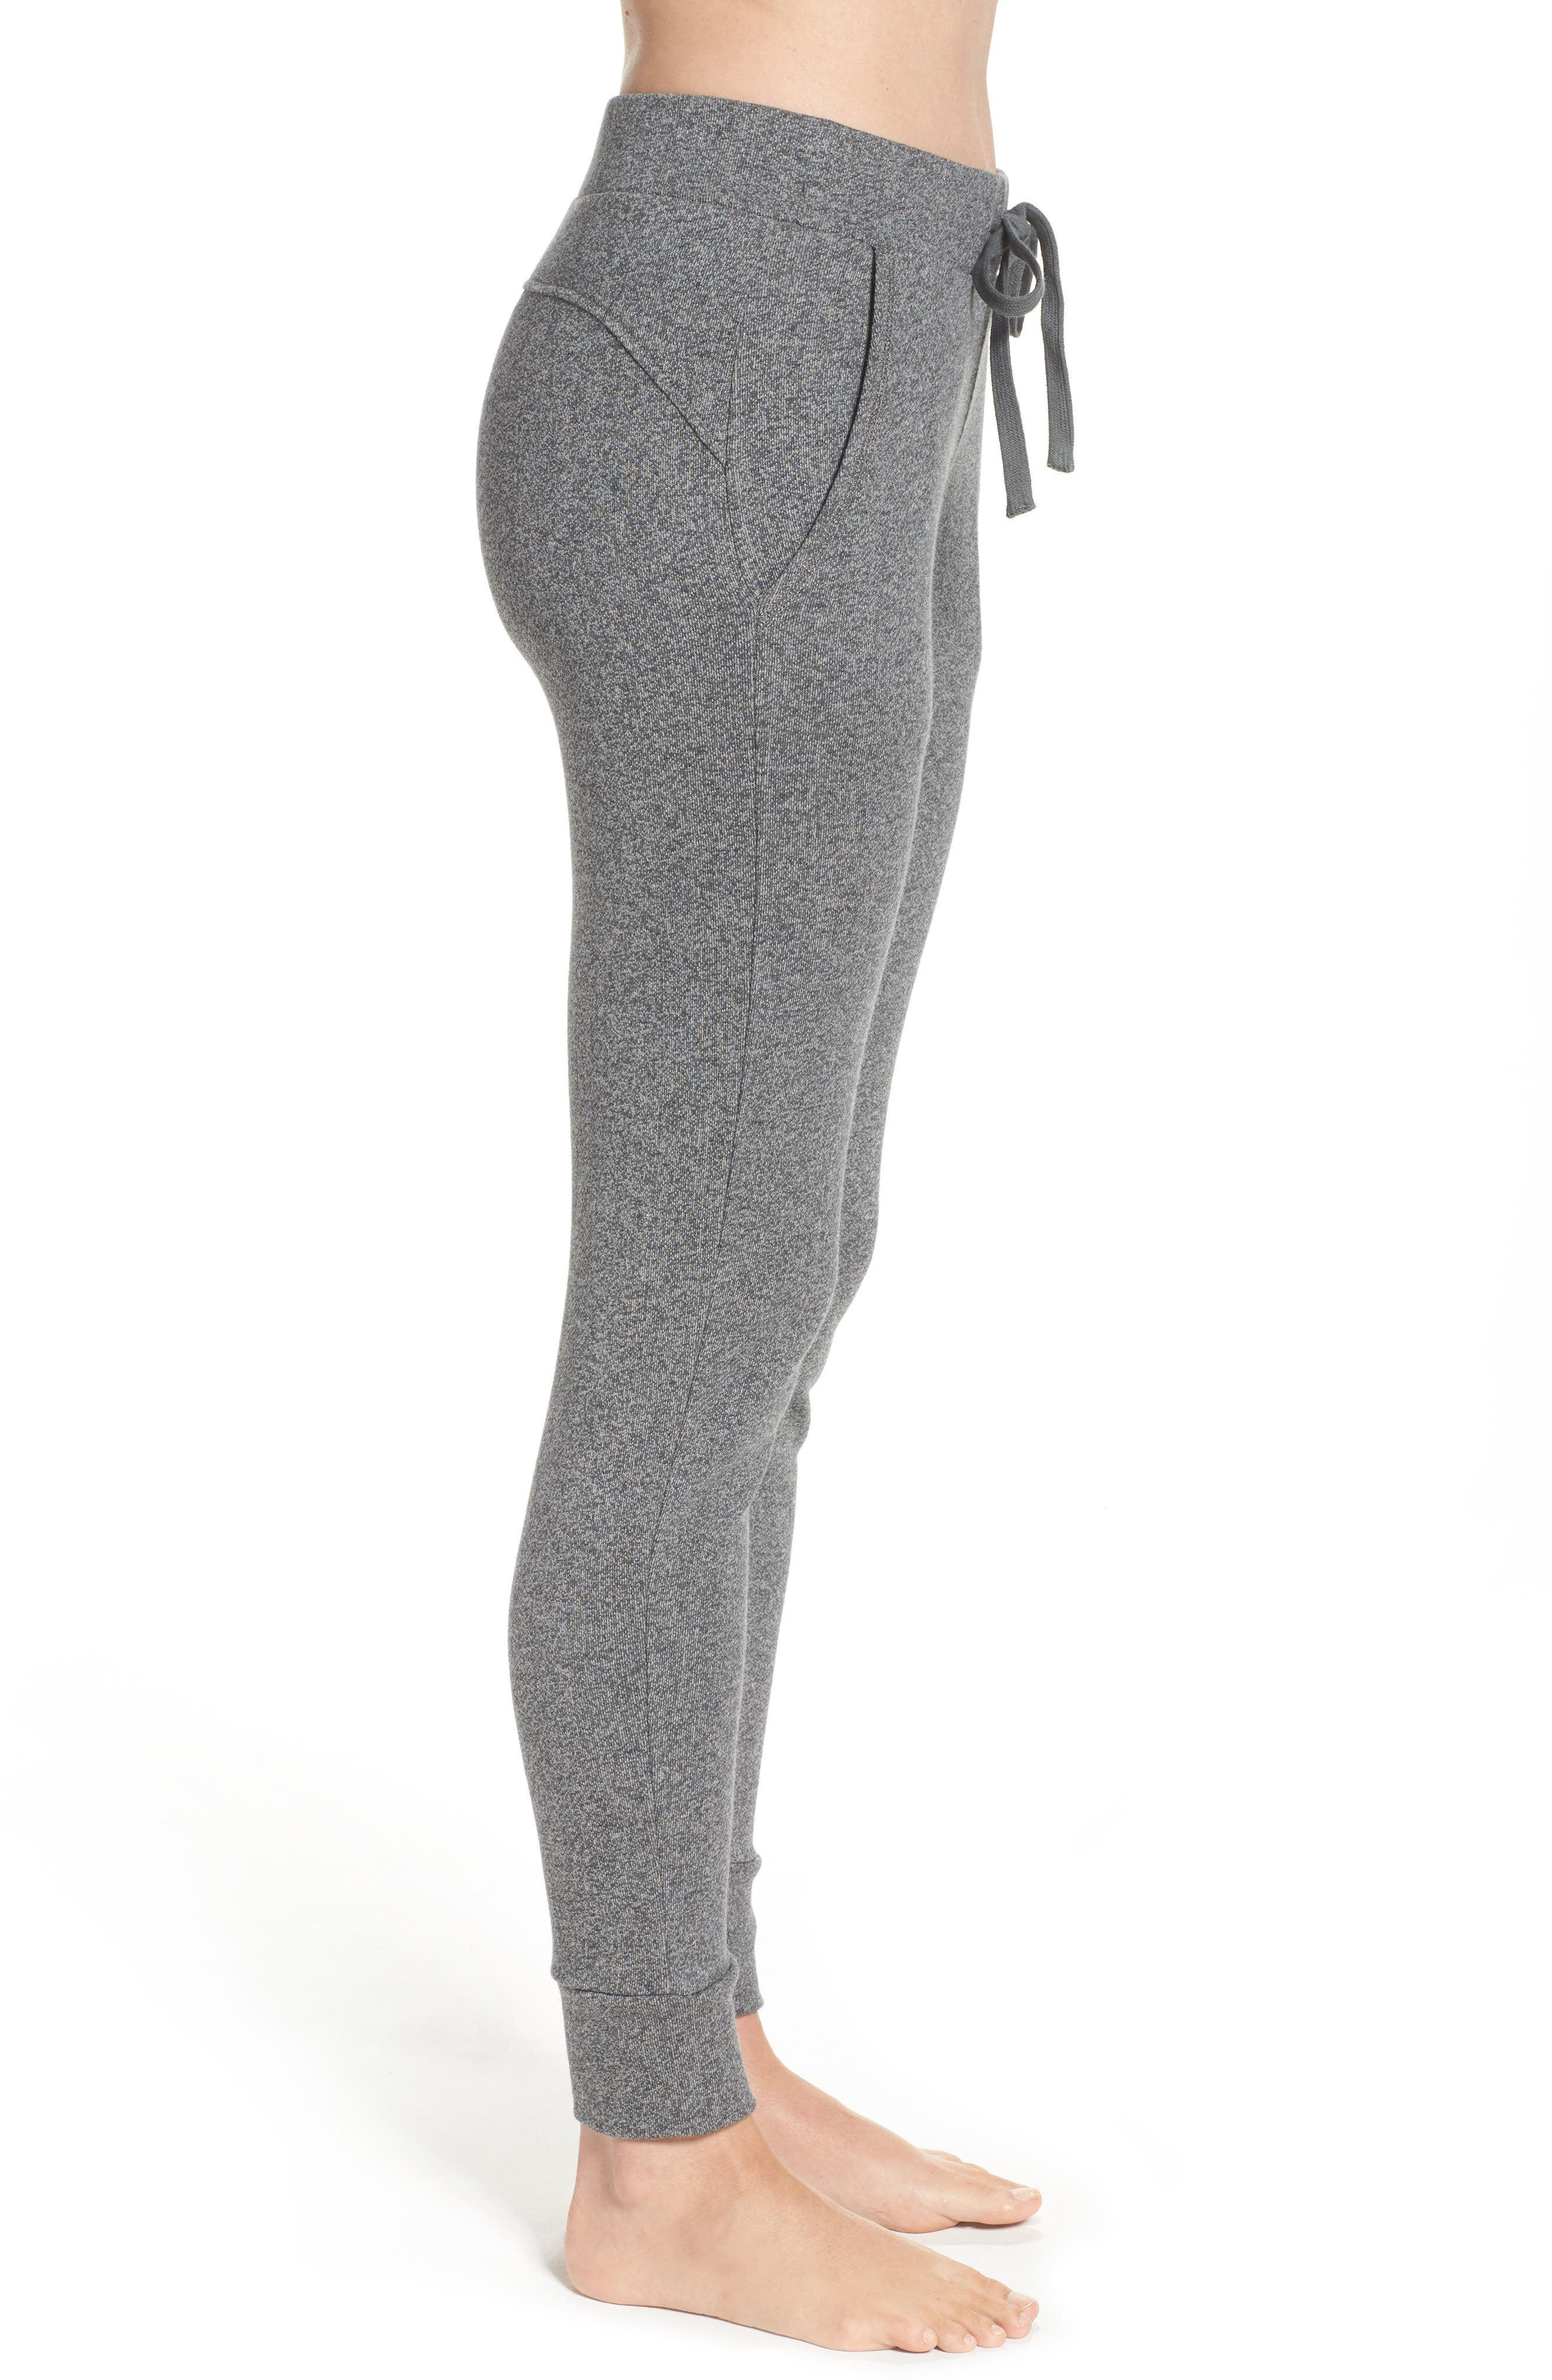 Clementine Terrry Sweatpants,                             Alternate thumbnail 3, color,                             Charcoal Heather